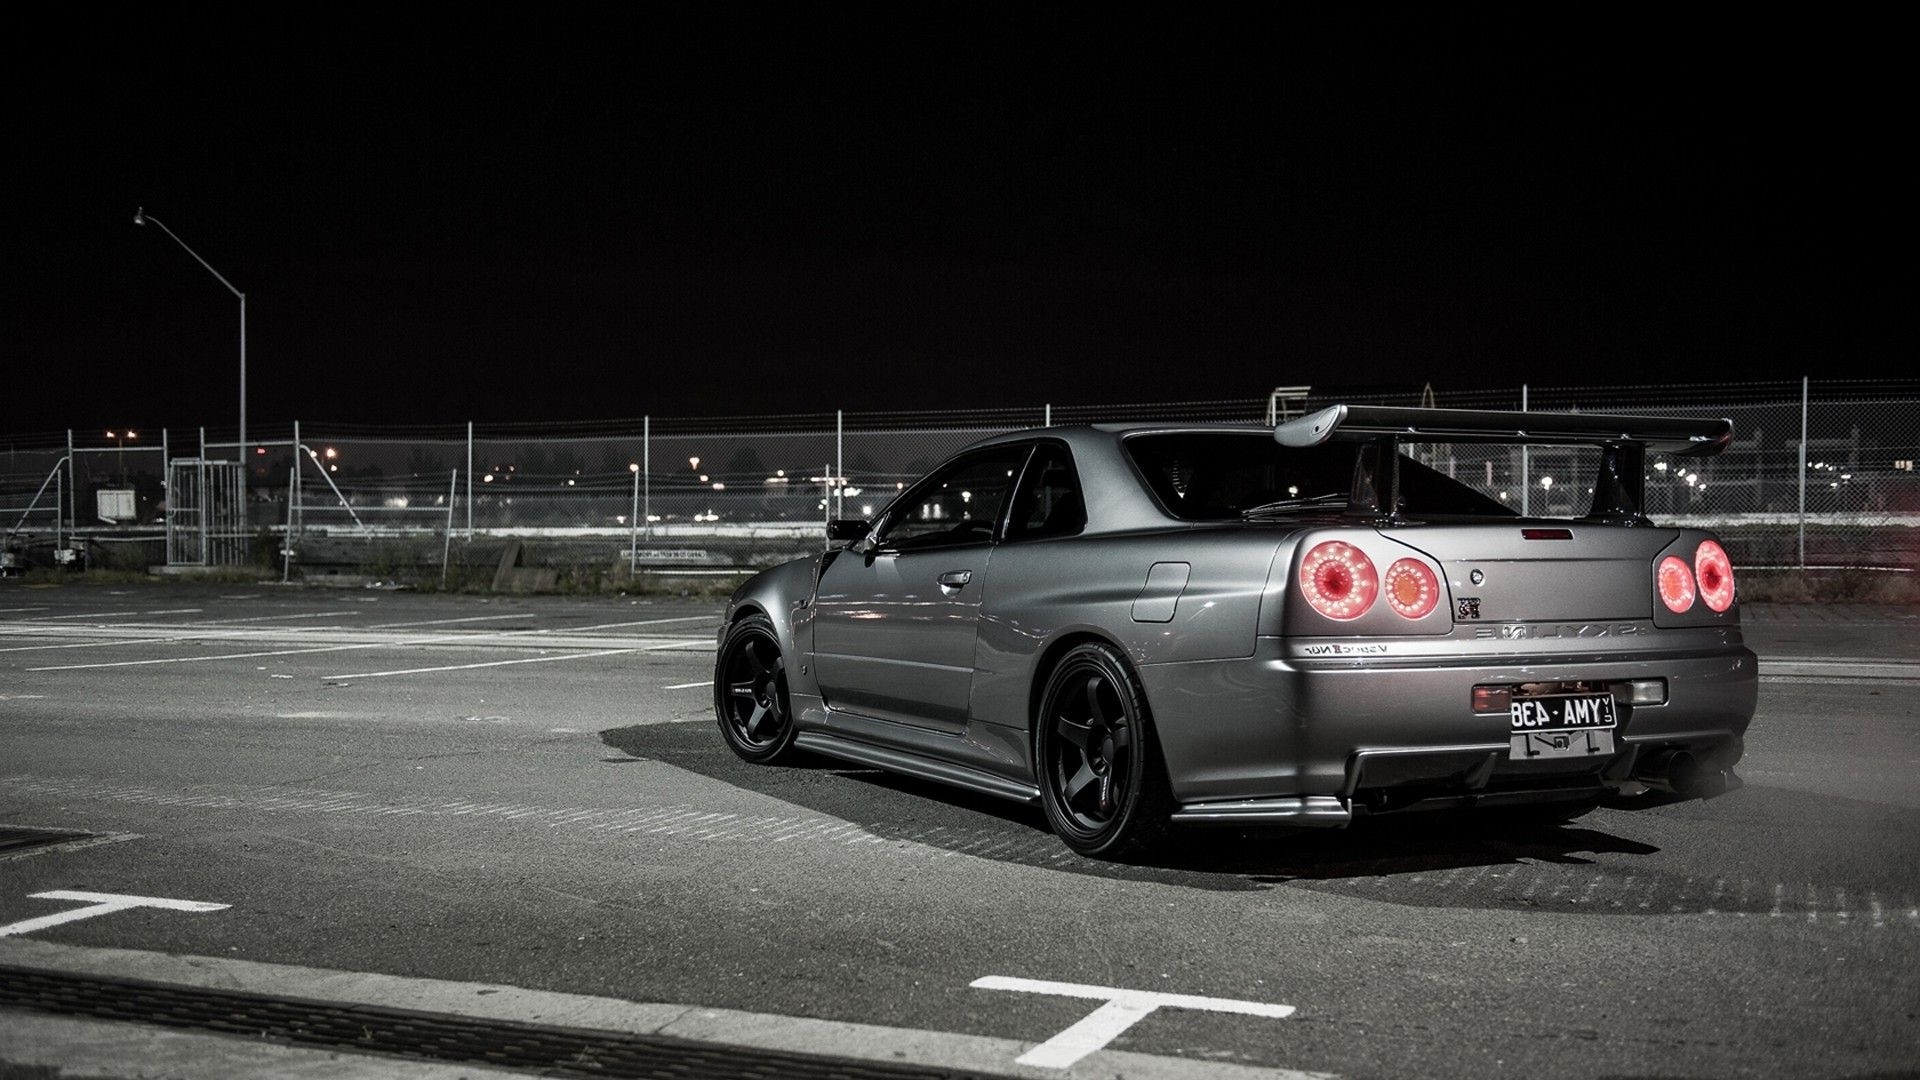 nissan skyline r34 wallpaper. Black Bedroom Furniture Sets. Home Design Ideas